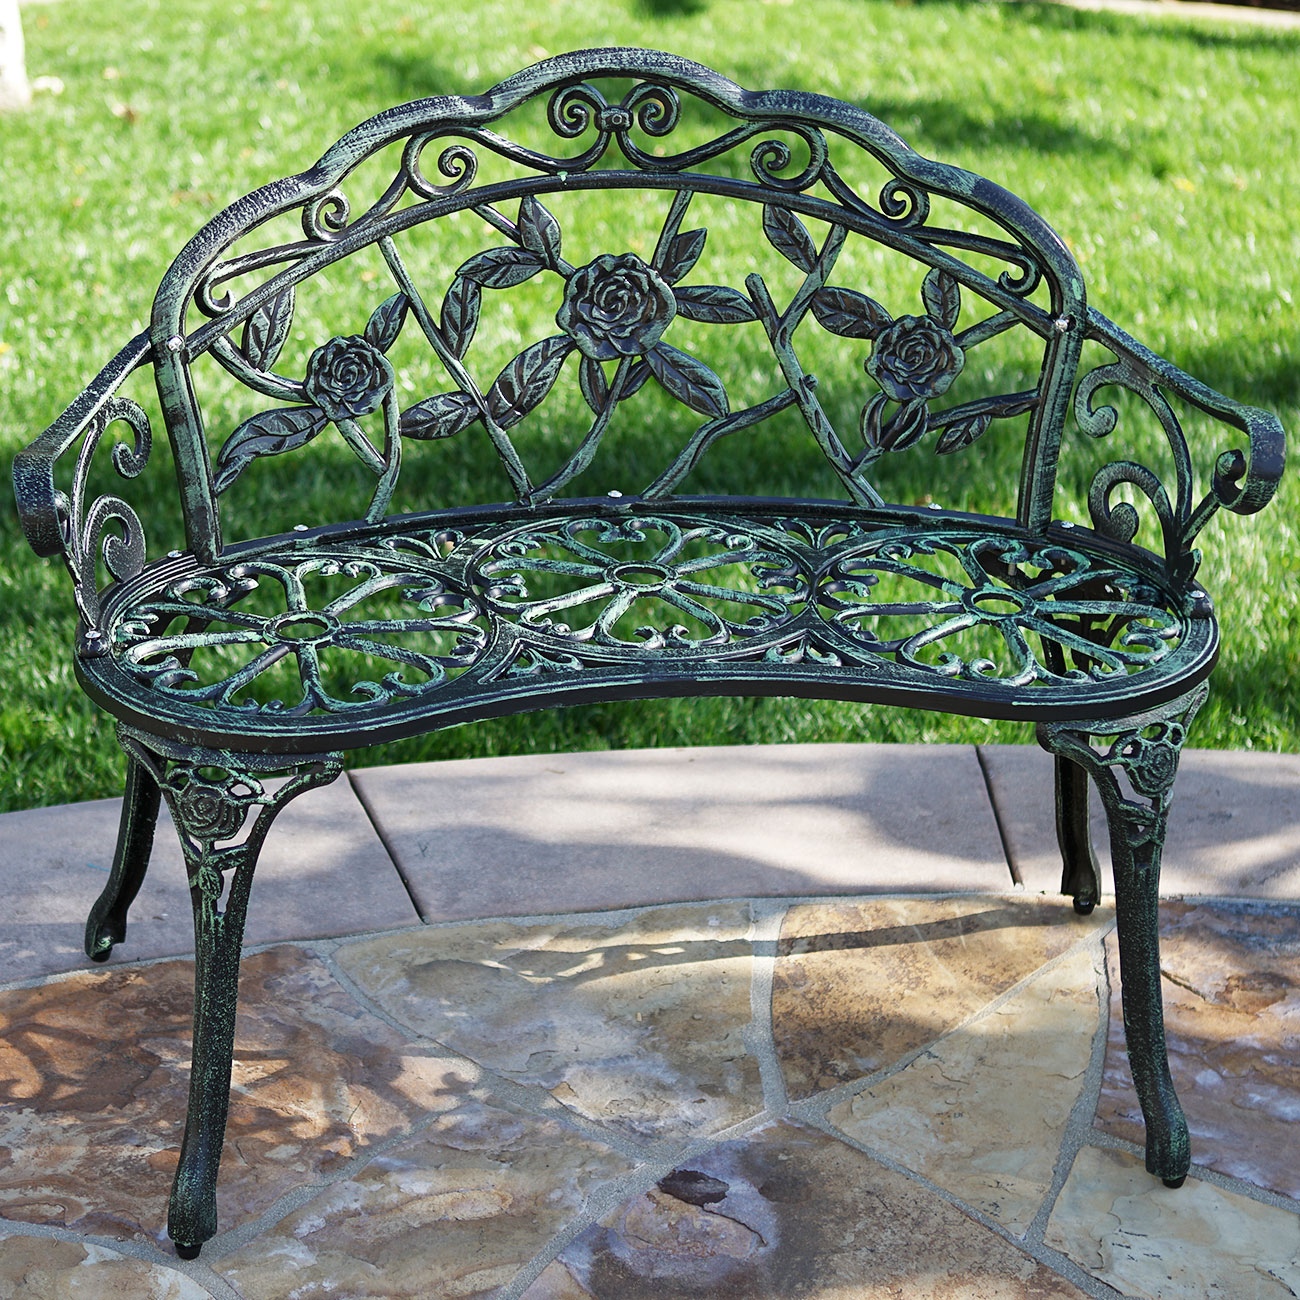 Belleze Rose Iron Garden Bench by Belleze